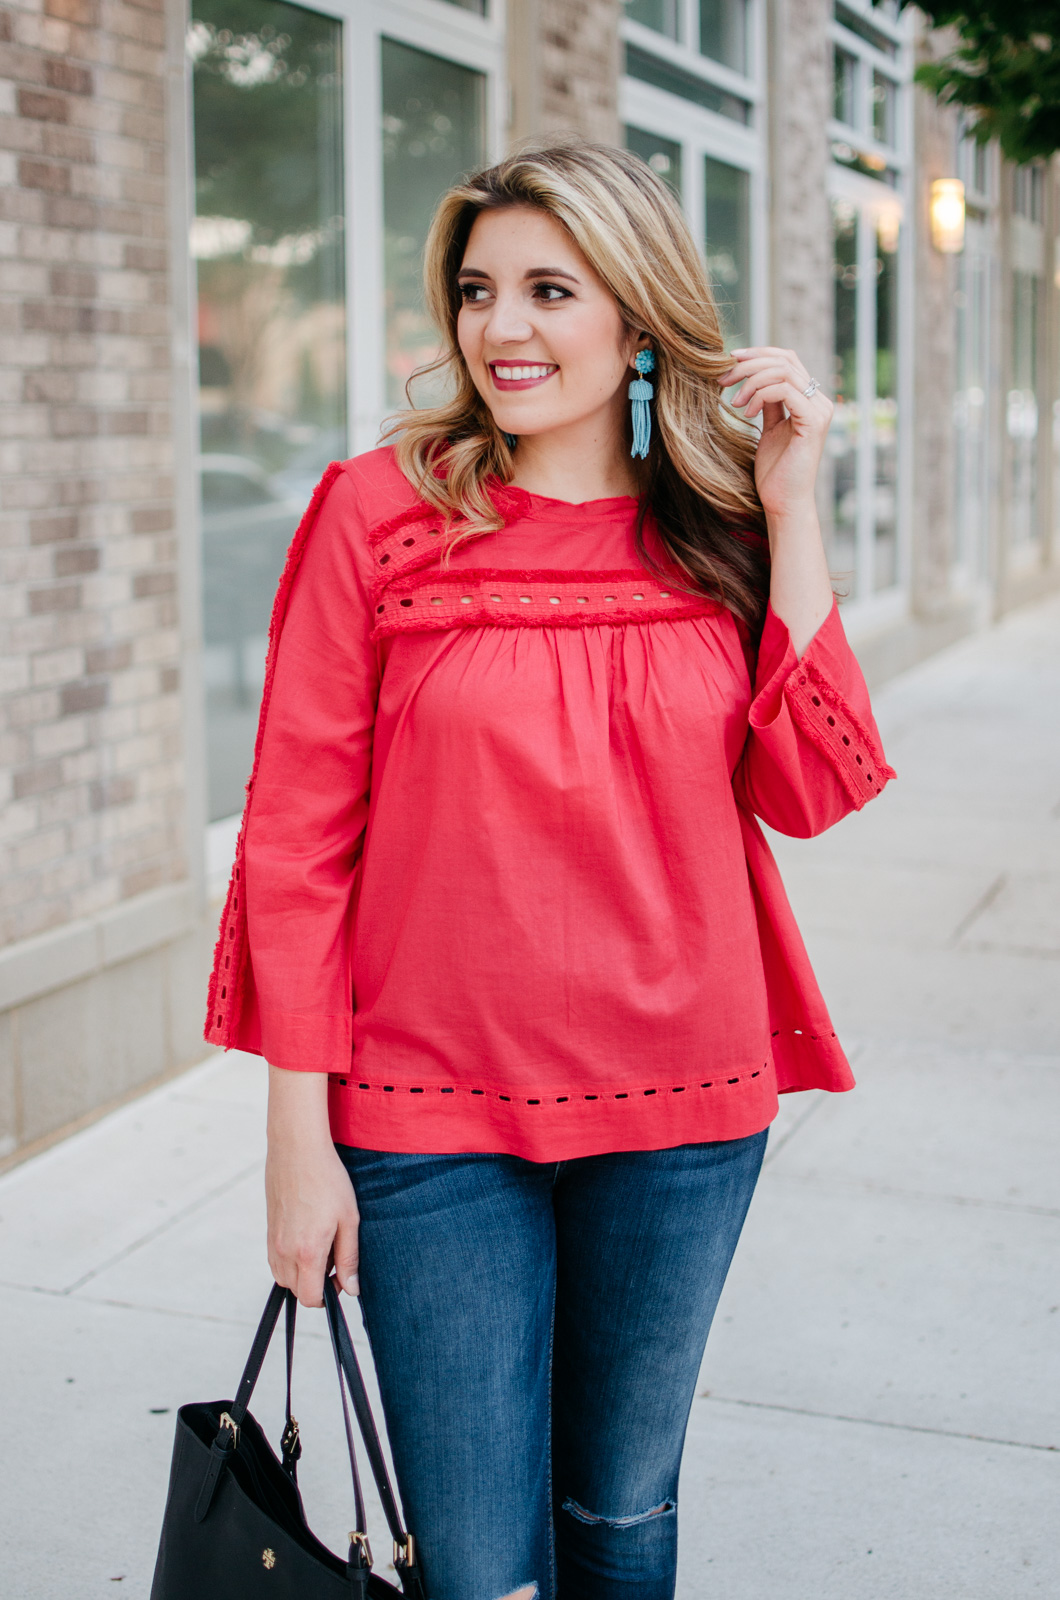 fringe embellished top spring outfit   Get more cute spring weekend outfit ideas at bylaurenm.com!